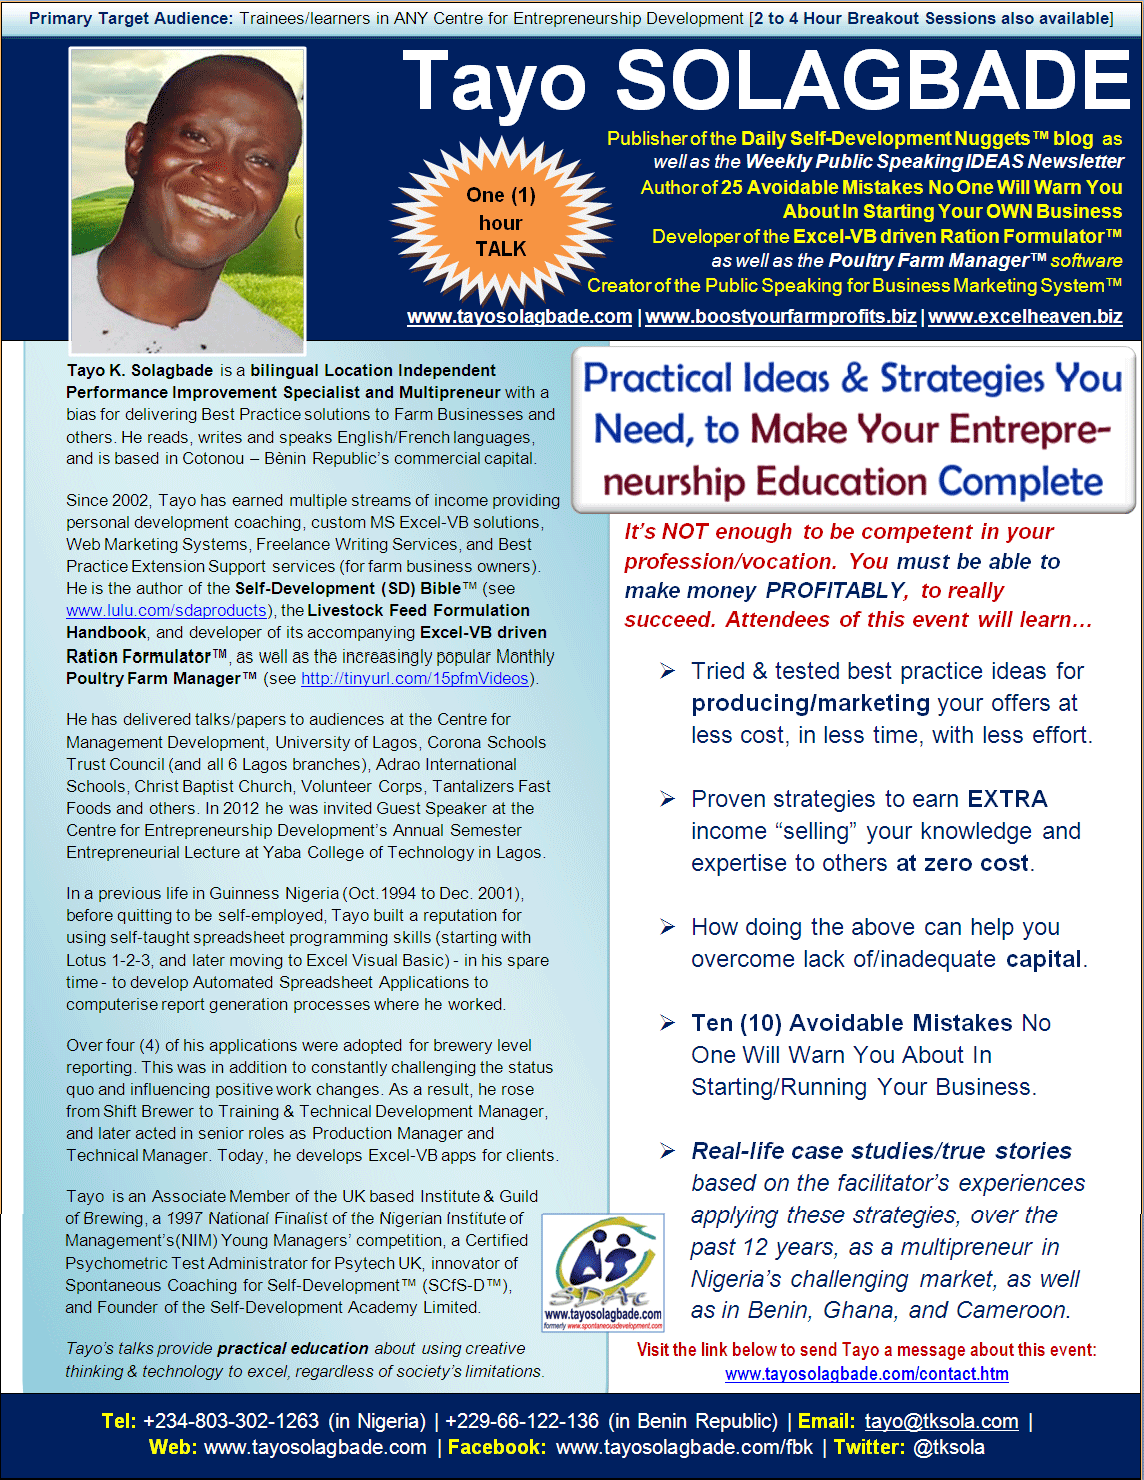 Click to download - PDF Speaker One Sheet for Tayo Solagbade's ONE HOUR TALK titled 'Practical Ideas and Strategies You Need to Make Your Entrepreneurship Education Complete'